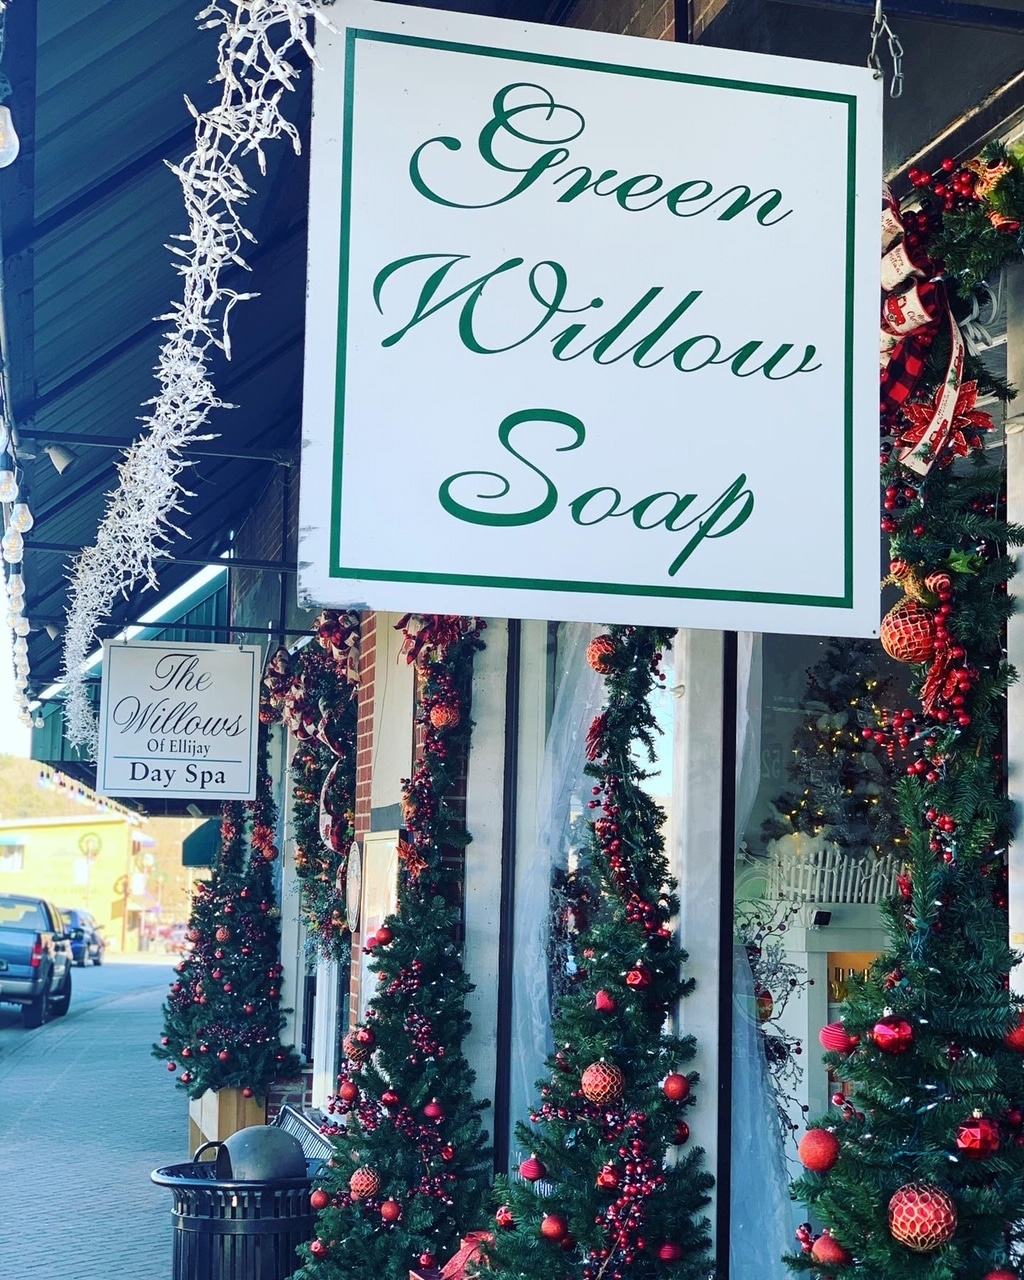 Green Willow Soap storefront decorated for the holidays